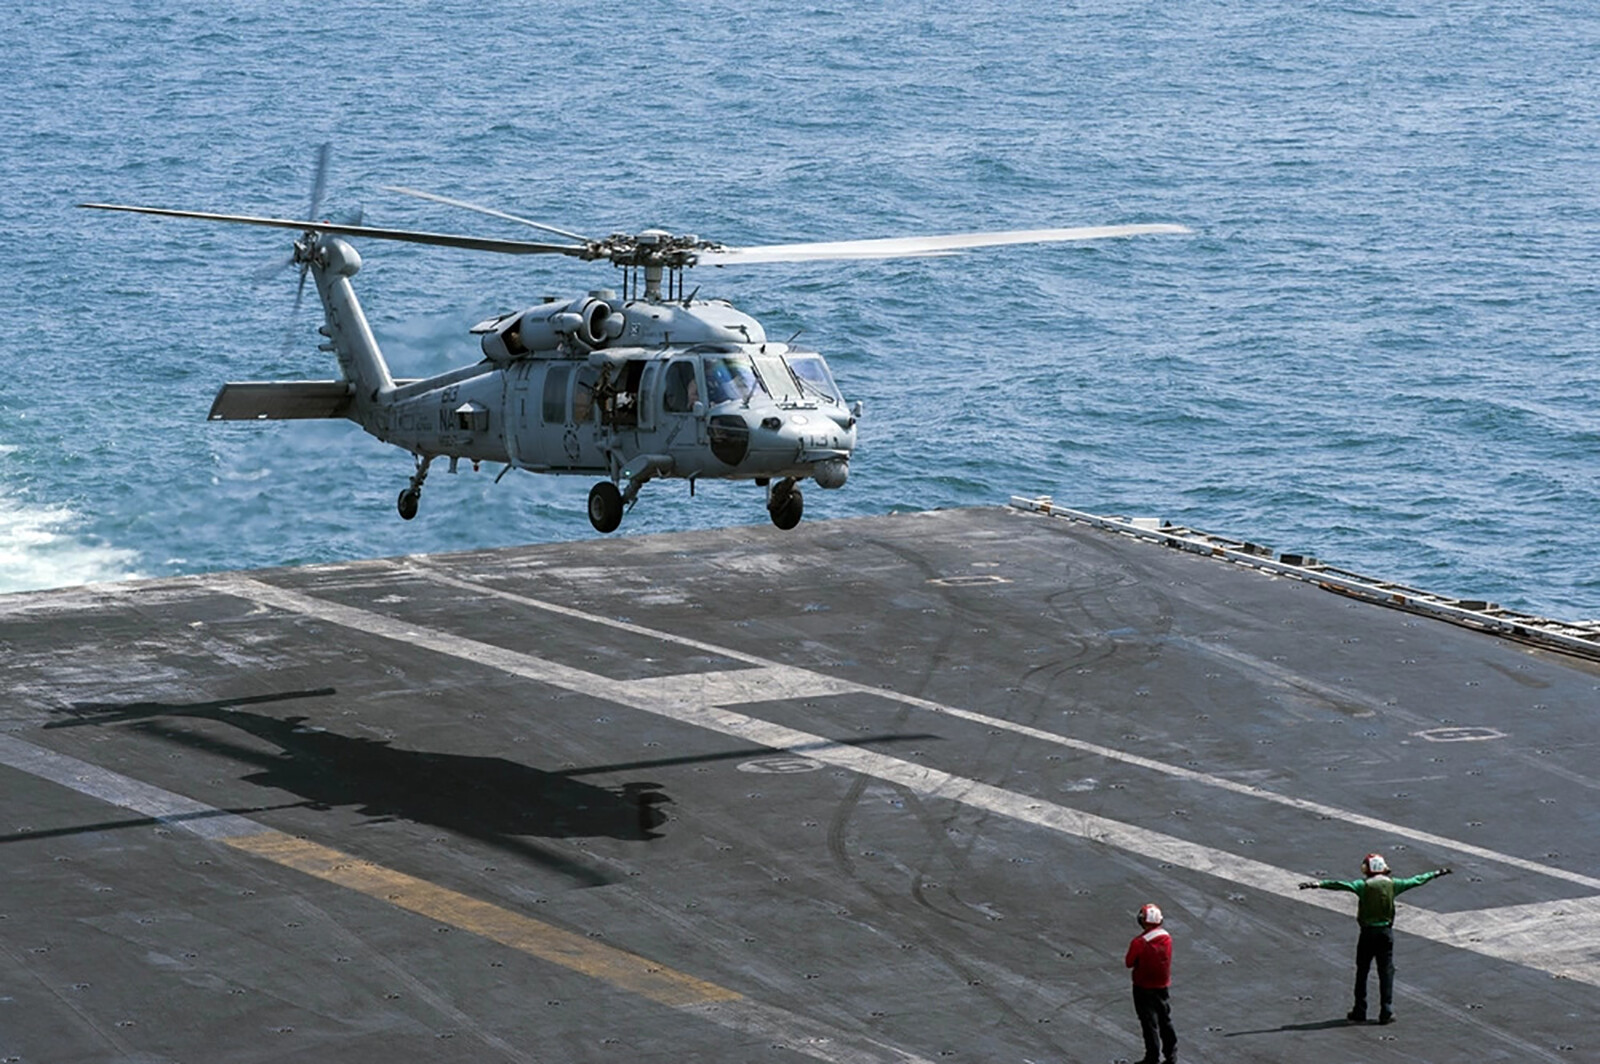 5 crew members unaccounted for after US Navy helicopter crashes off the San Diego coast